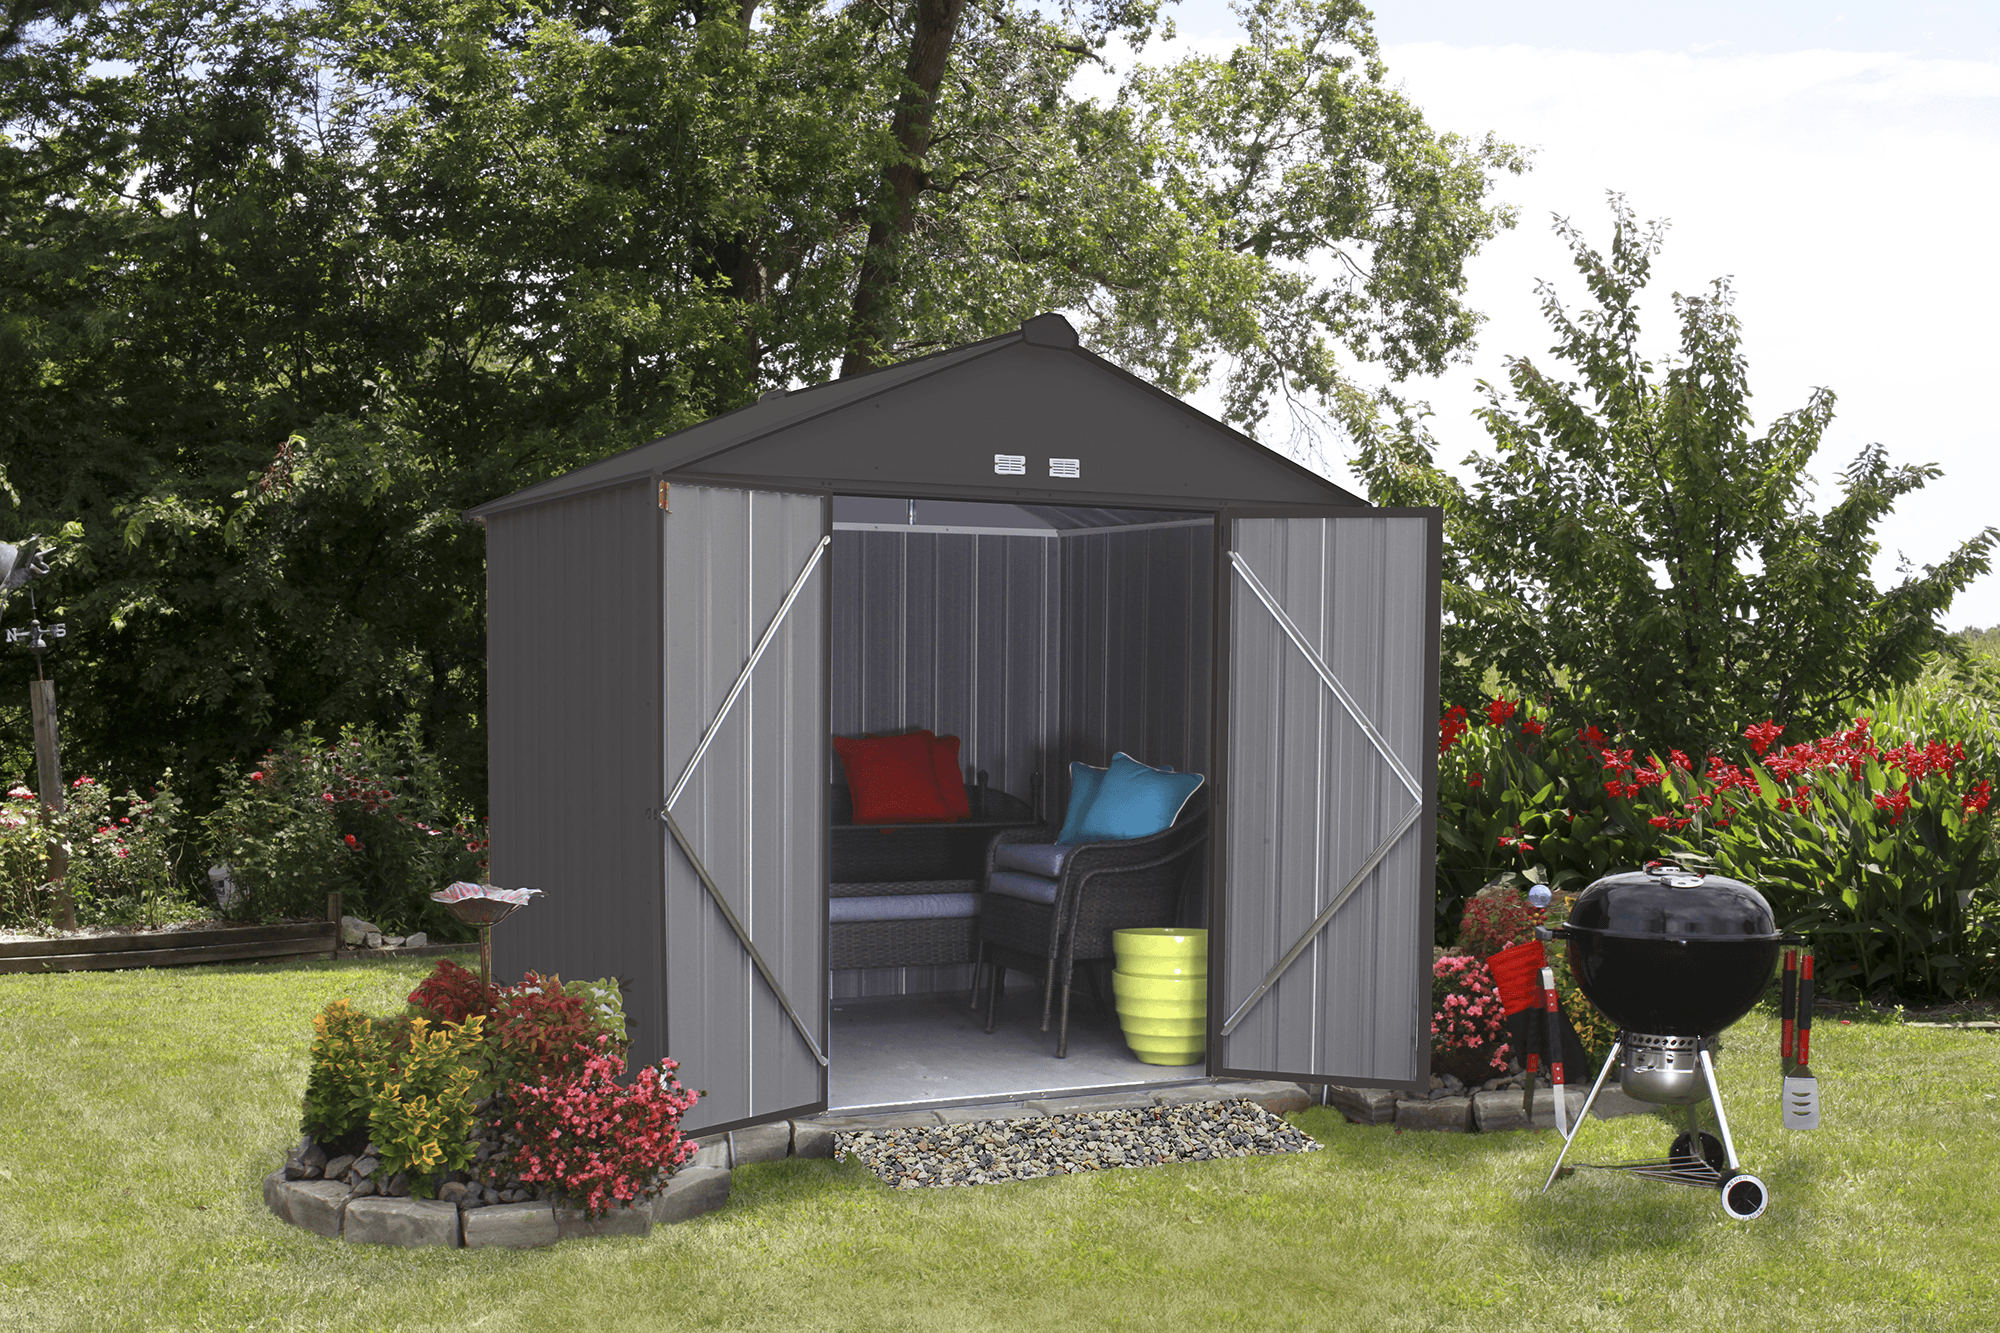 EZEE Shed Steel Storage 8 x 7 ft. Galvanized High Gable Charcoal